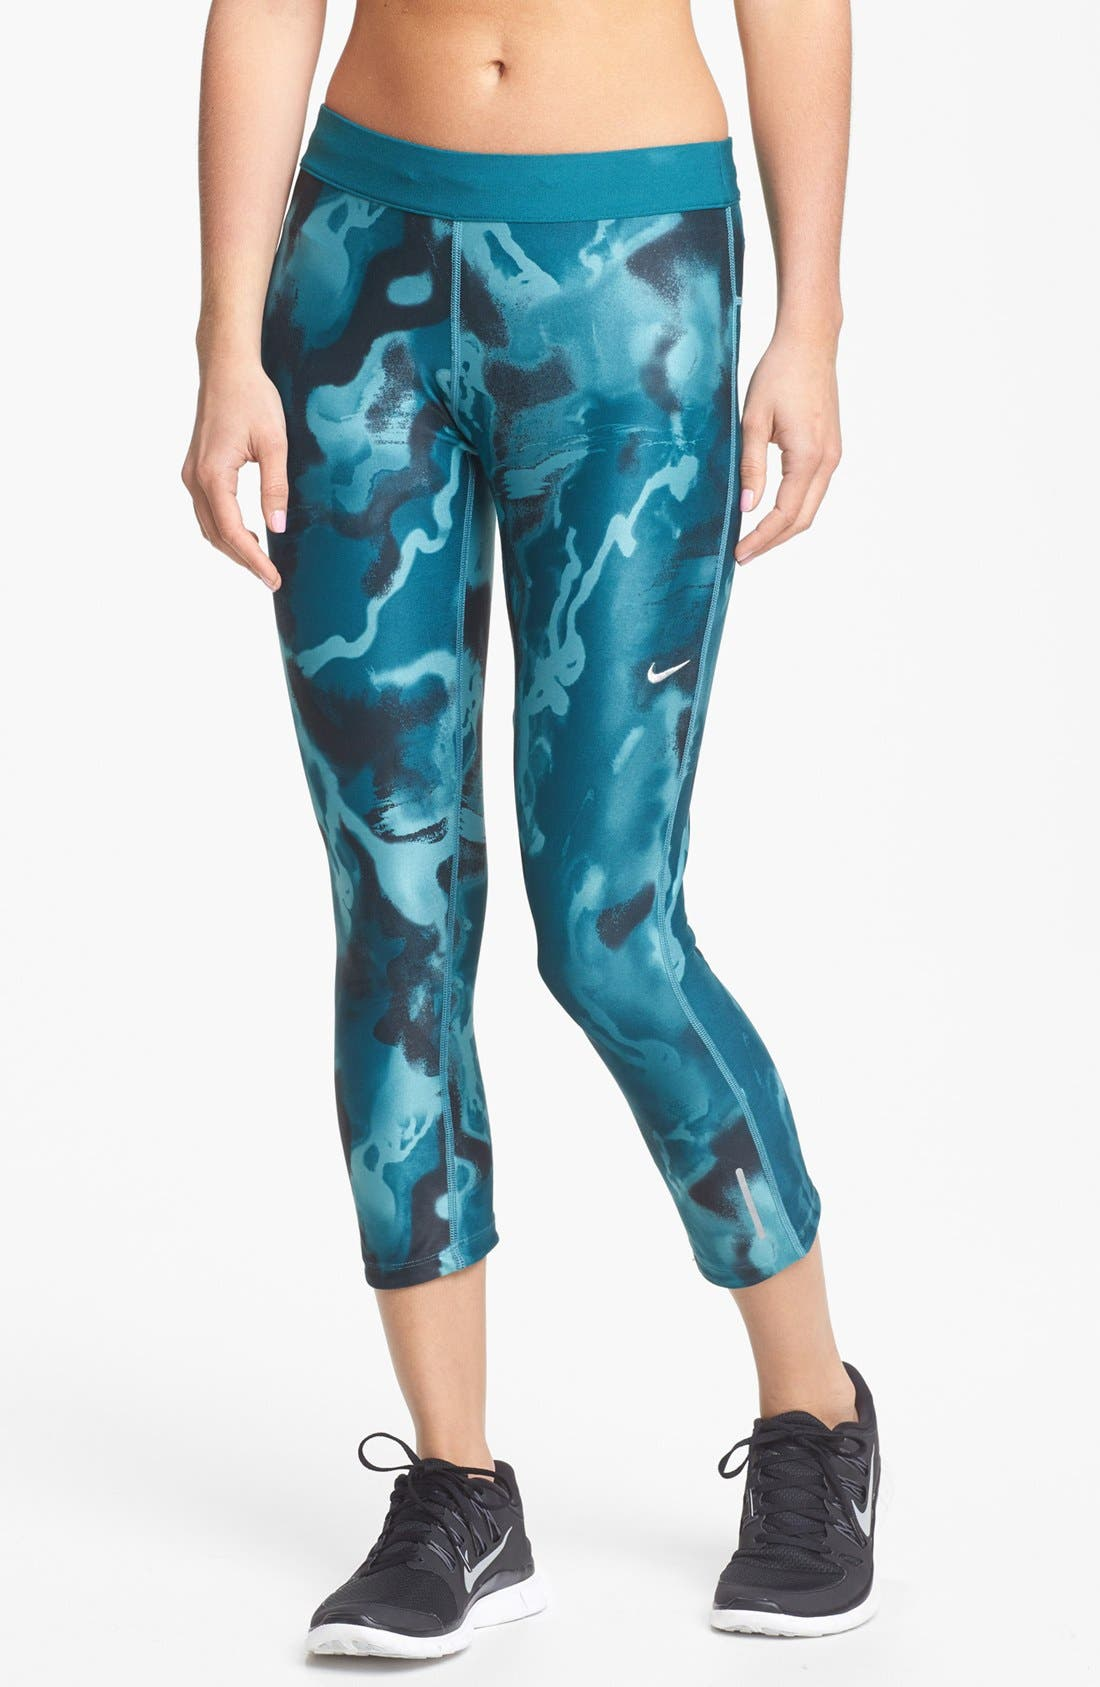 Main Image - Nike 'Twisty' Print Crop Running Pants